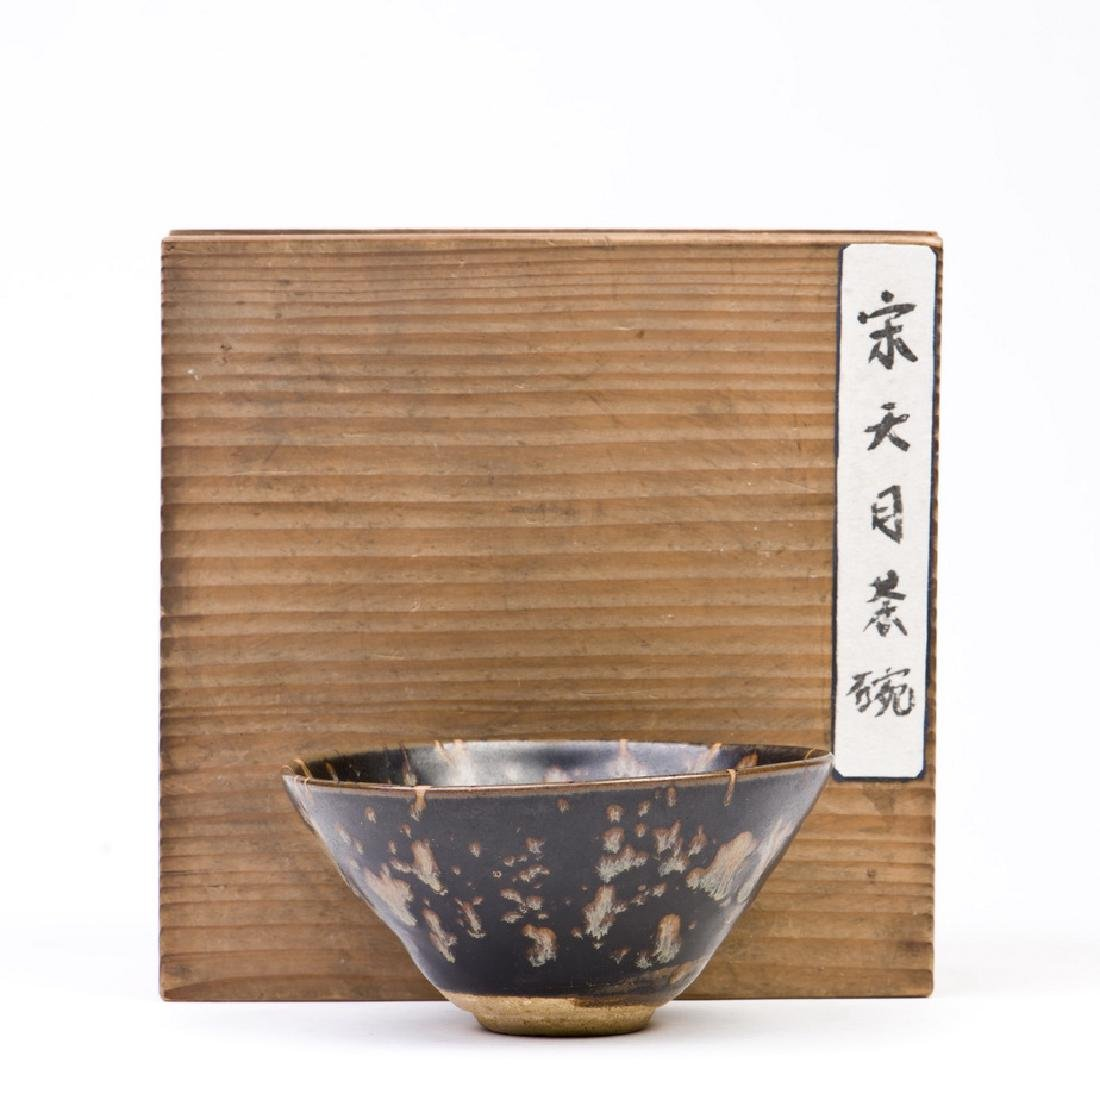 A Jizhou Tortoiseshell Glazed Tea Bowl